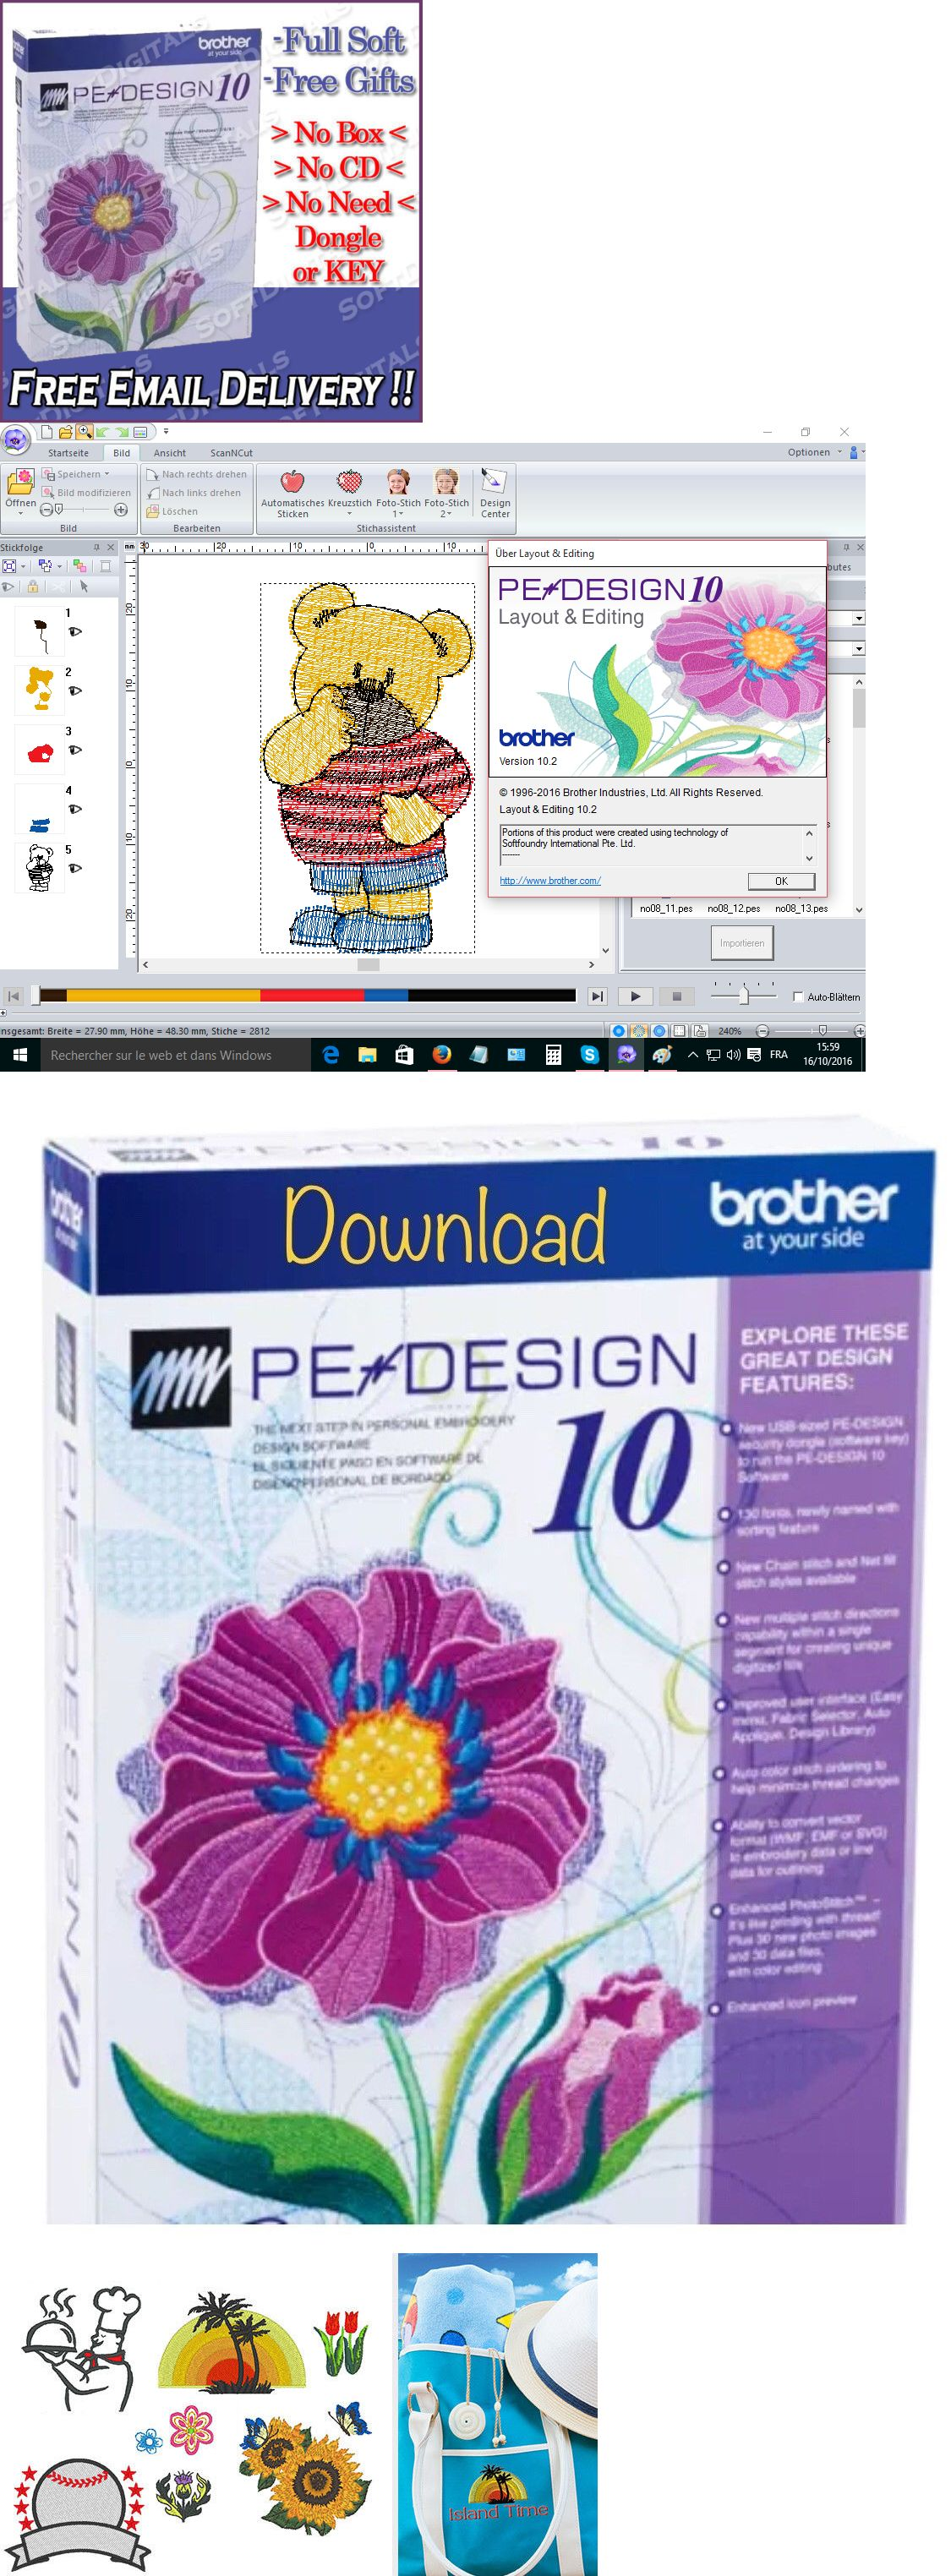 Digitizing Software 71197 Brother Pe Design 10 Full Embroidery Free Software And Gifts Immediate Delivery Buy I Brother Pe Design Embroidery Pe Embroidery